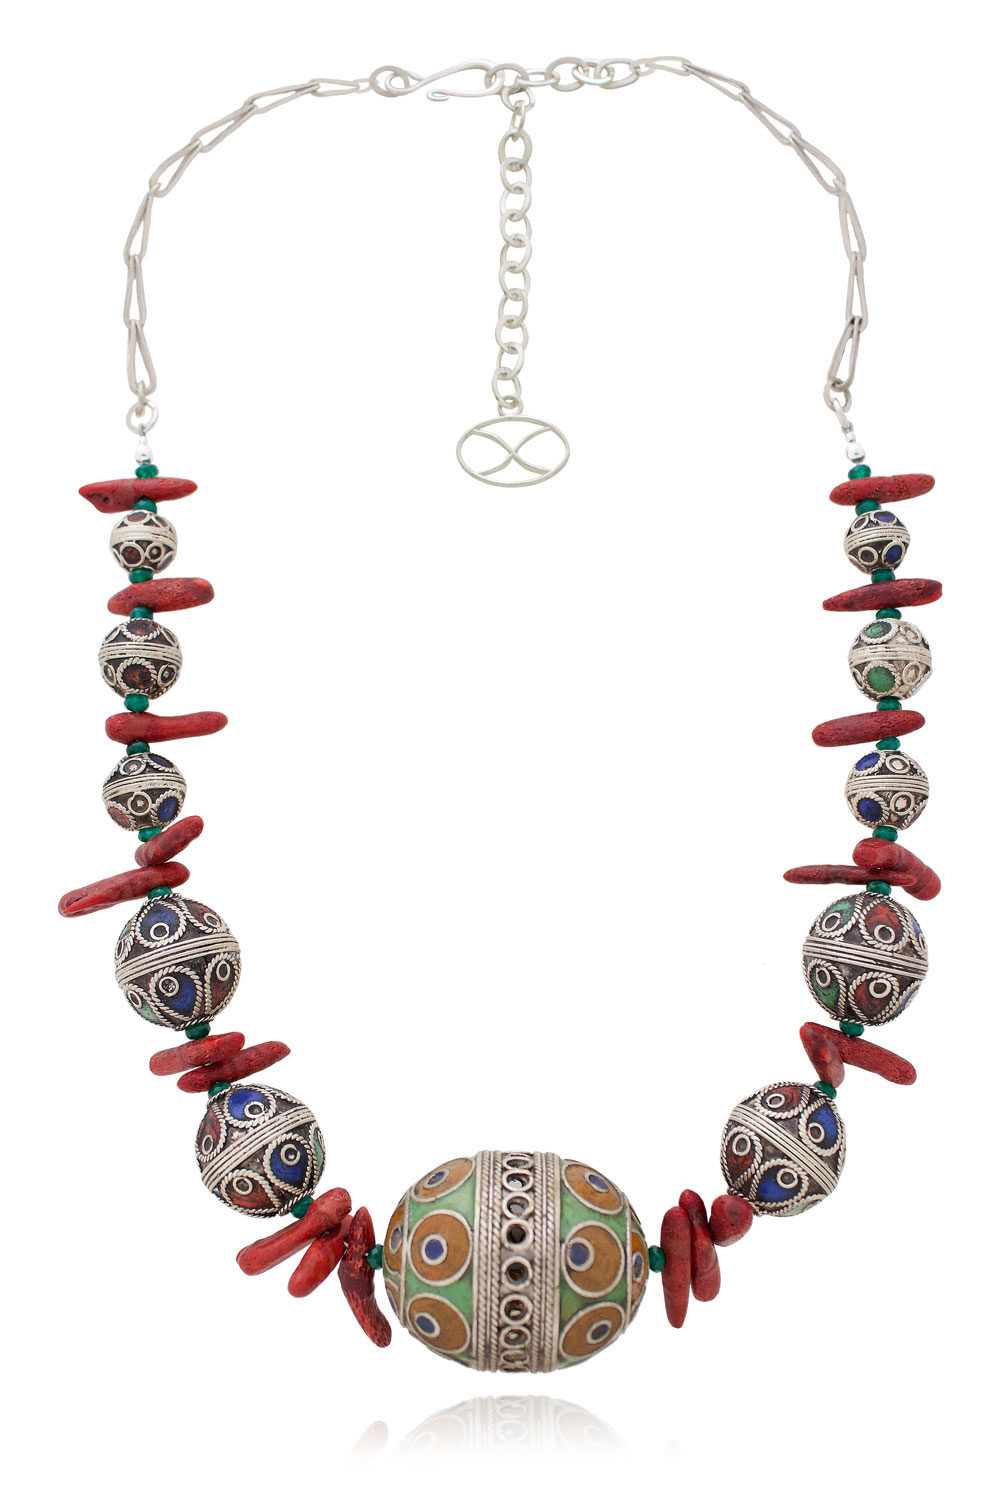 Fayola Berber Egg Bead Necklace with Coral by SHIKHAZURI